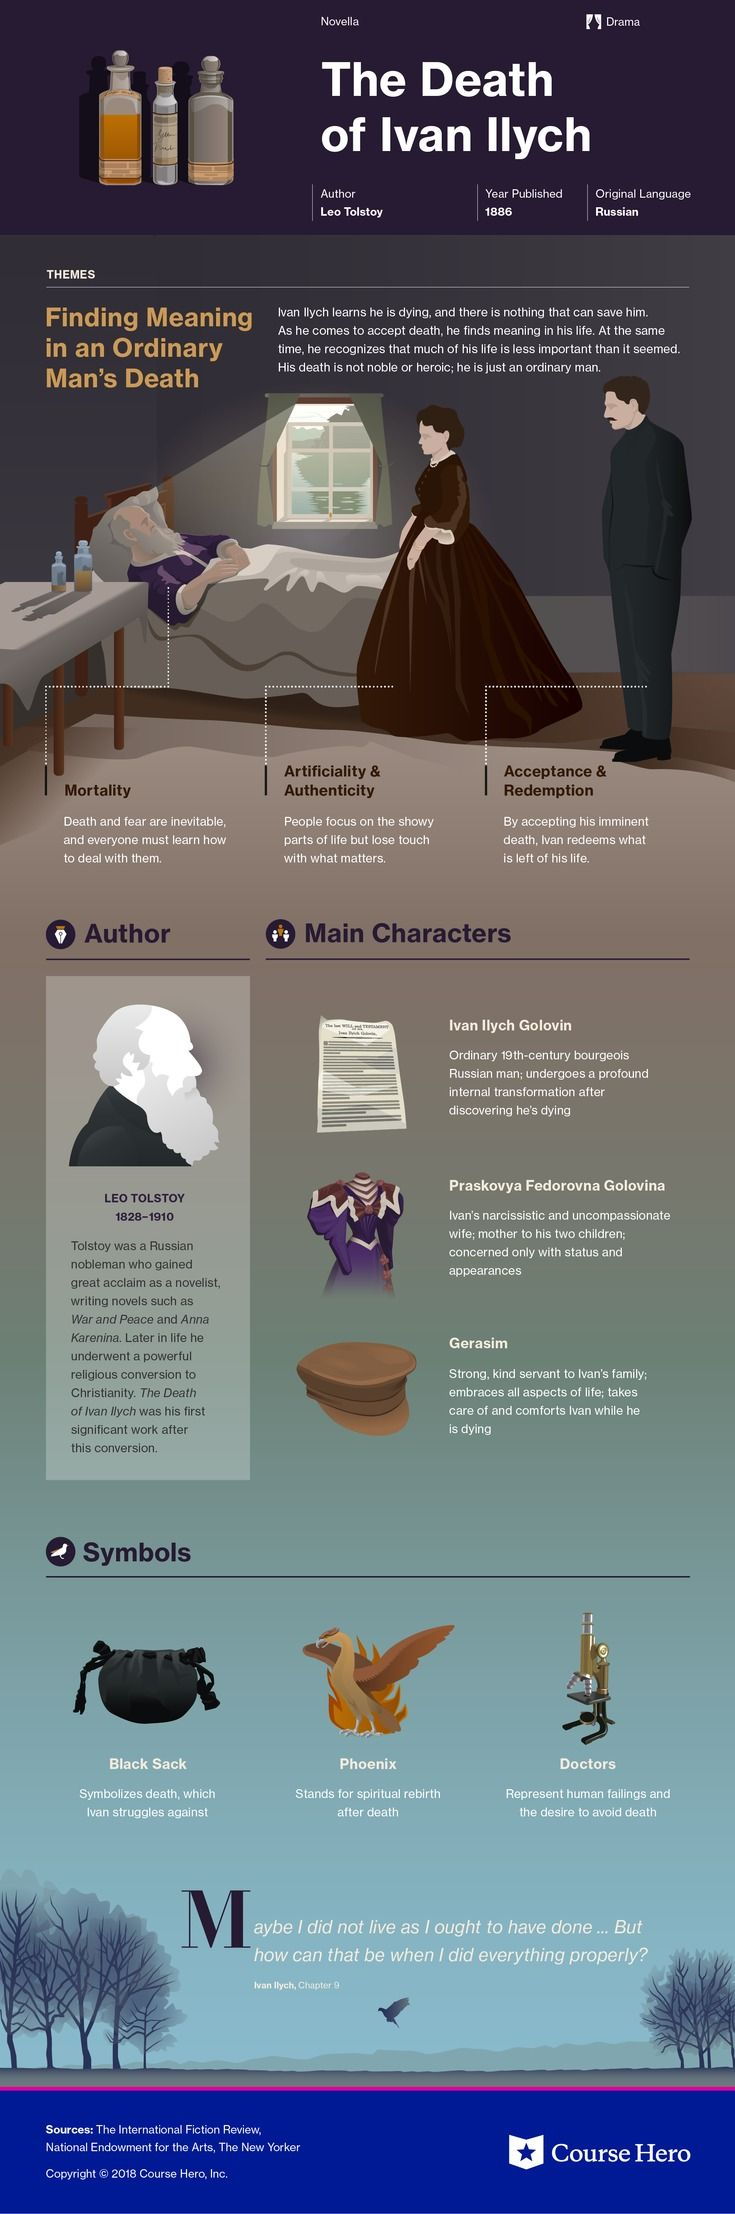 The Death Of Ivan Ilych Study Guide In   Infographics  The Death Of Ivan Ilych Study Guide In   Infographics  Literature   Pinterest  Books Literature And Death